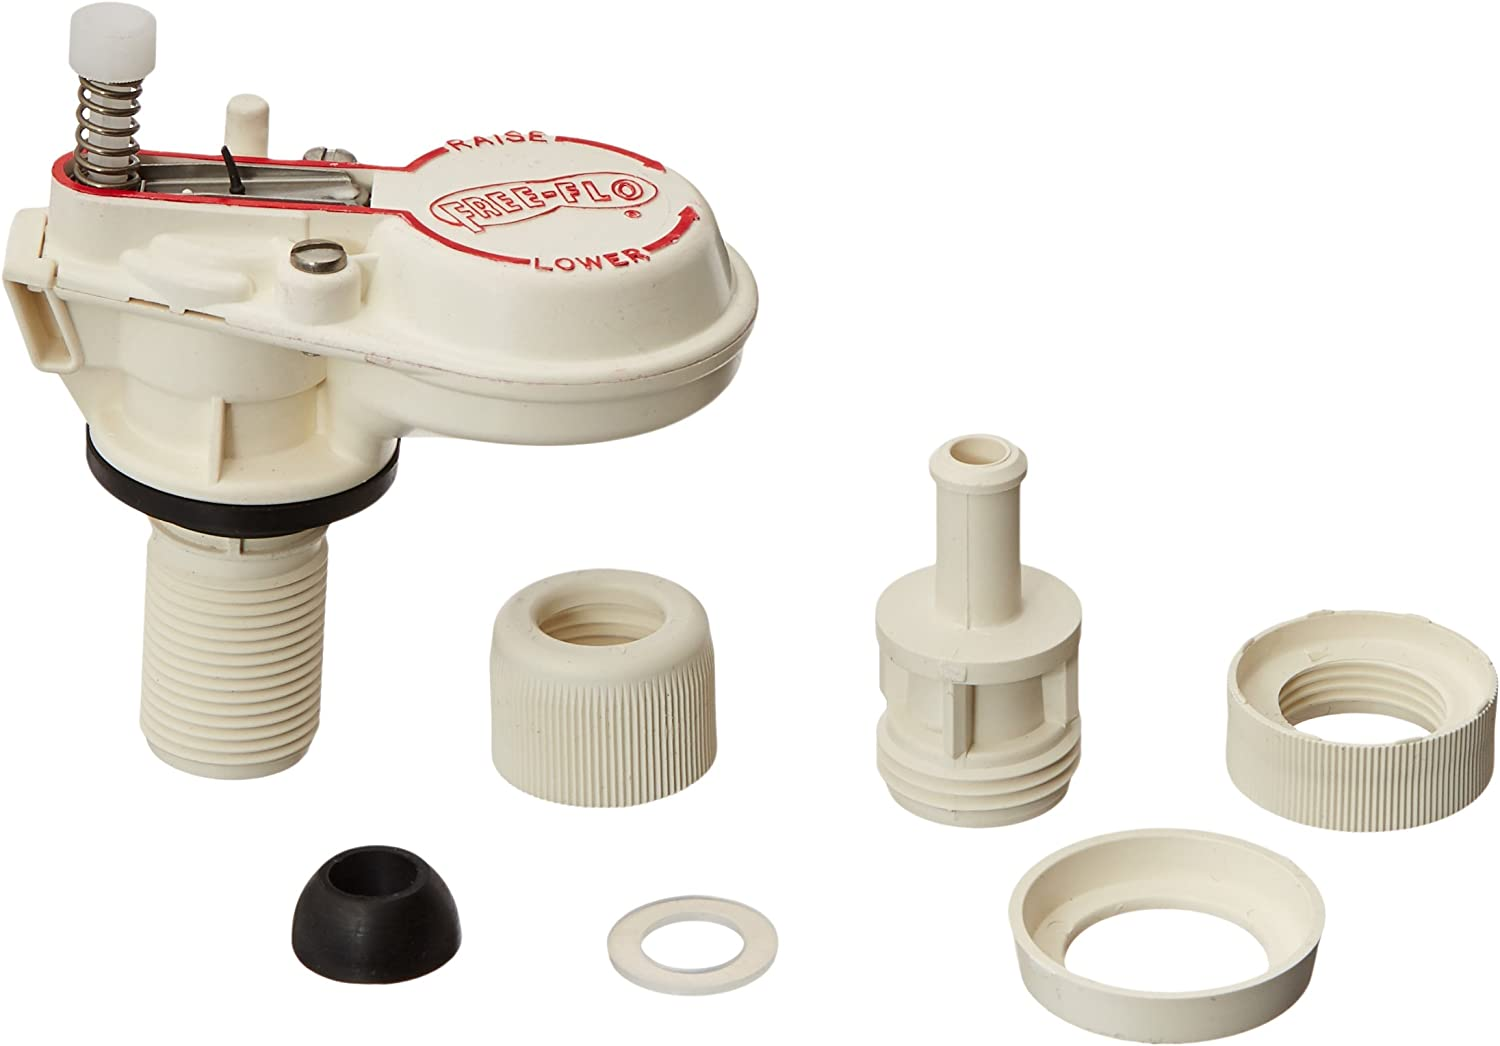 24-Pack LASCO 04-4104-MASTER Fill Valve Magnus Plastic Low Profile Anti-Syphon Adjustable 6-Inch to 12-Inch with Refill Tube and Nut